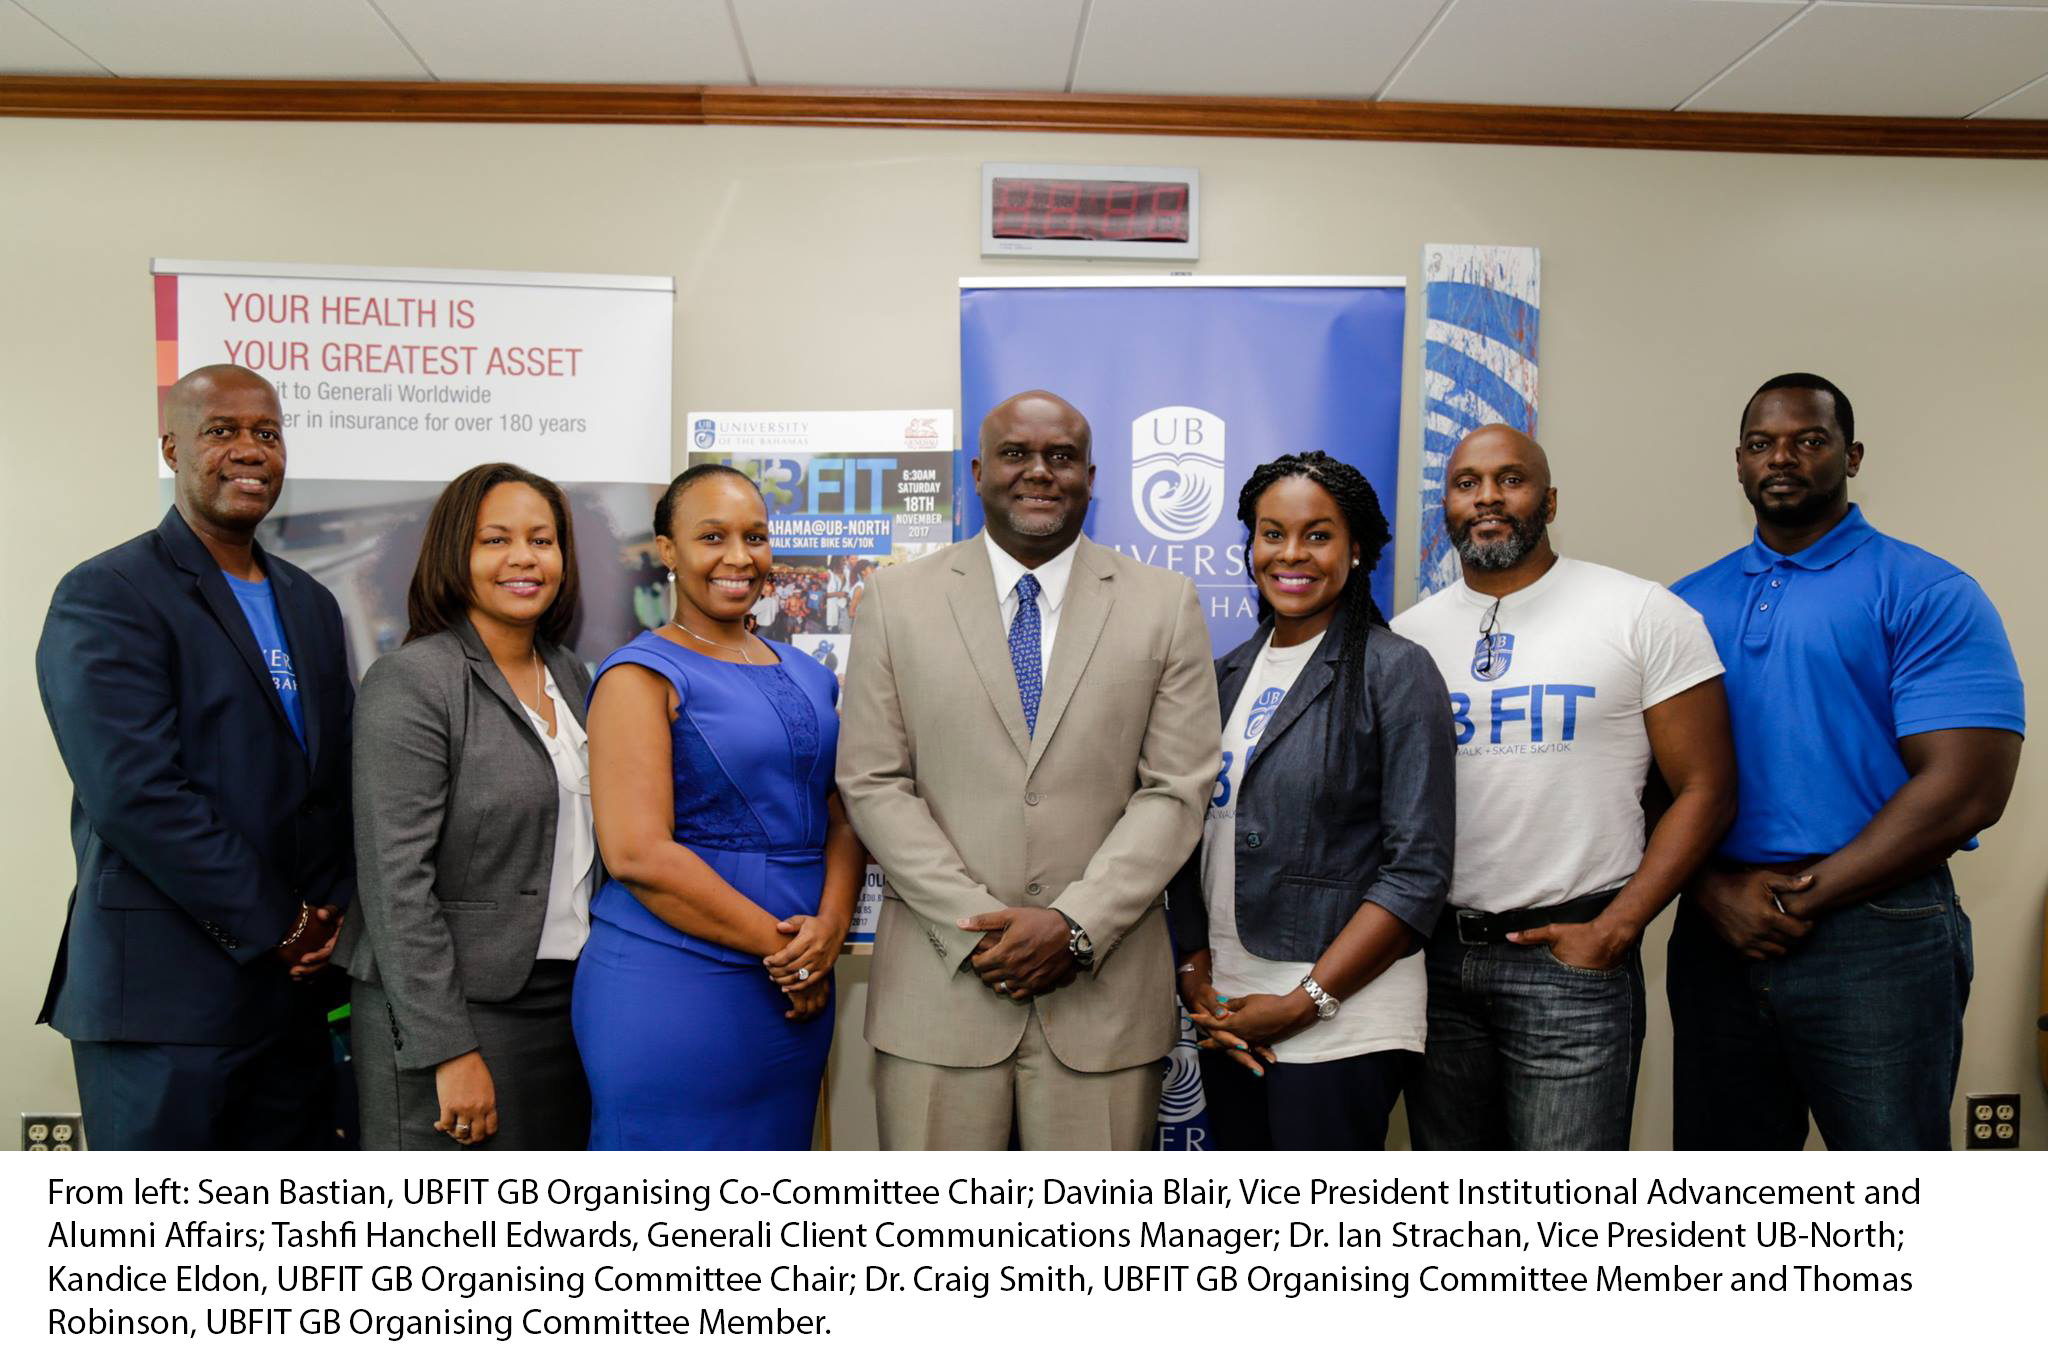 UBFIT Grand Bahama Focuses on Health as a National Imperative